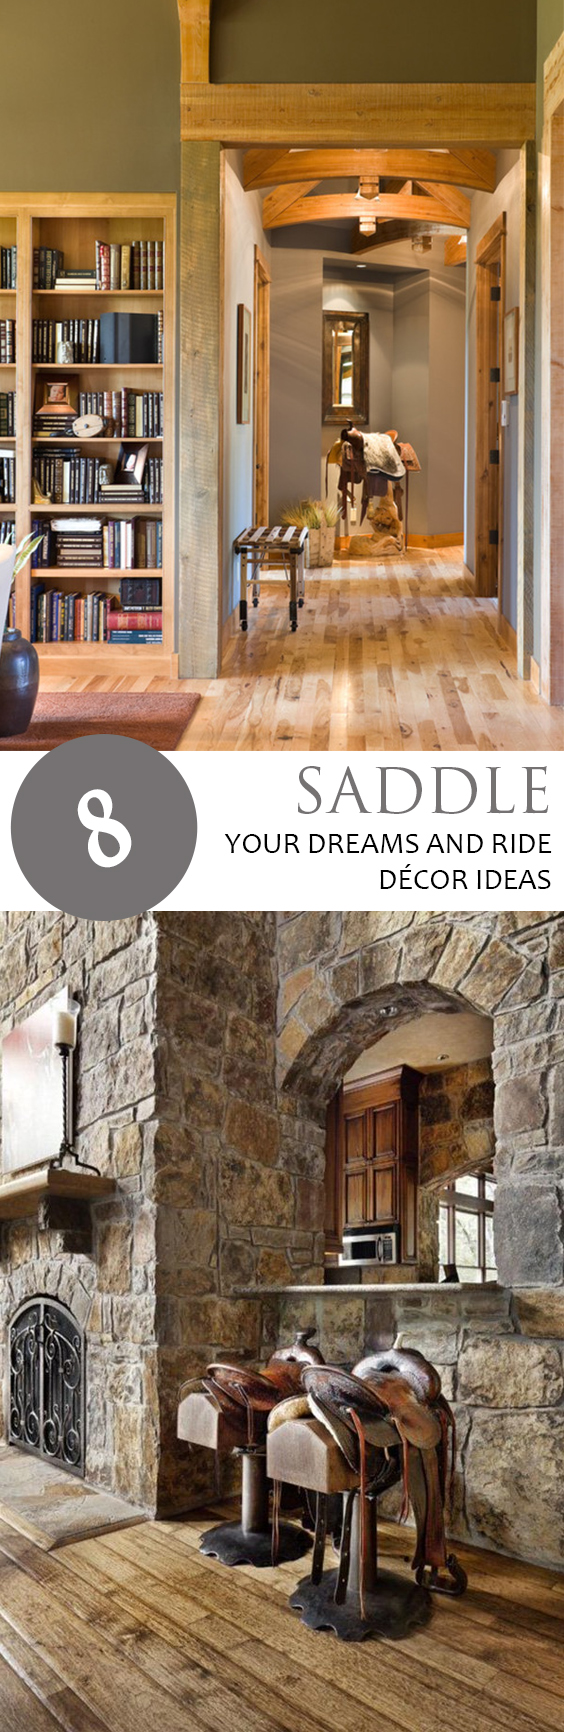 Saddle Decor Ideas Home Decorating Ideas